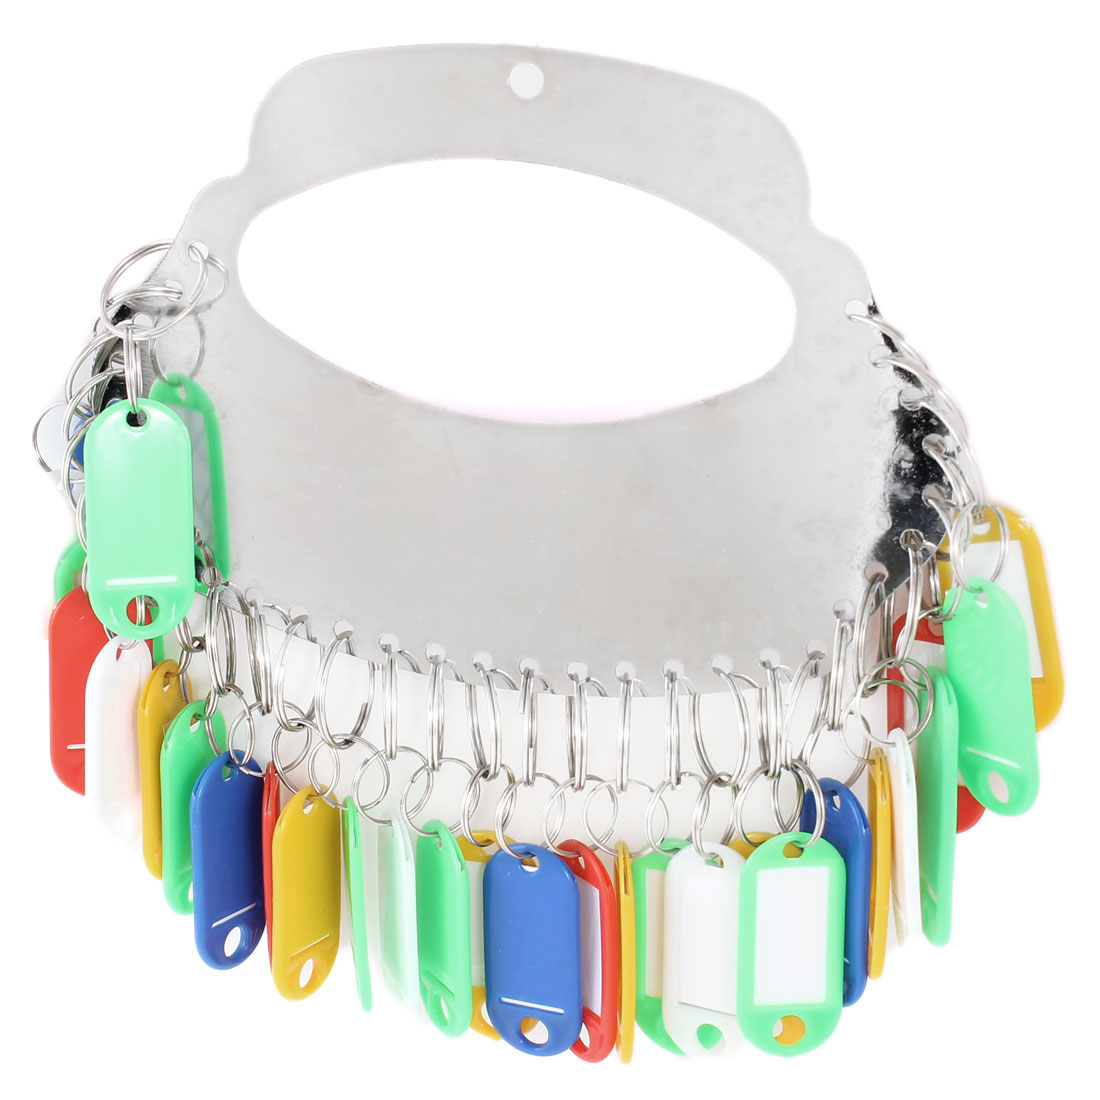 Separable 30 Rings Keys Organizer Board w Colorful Name Badge Clip Holder